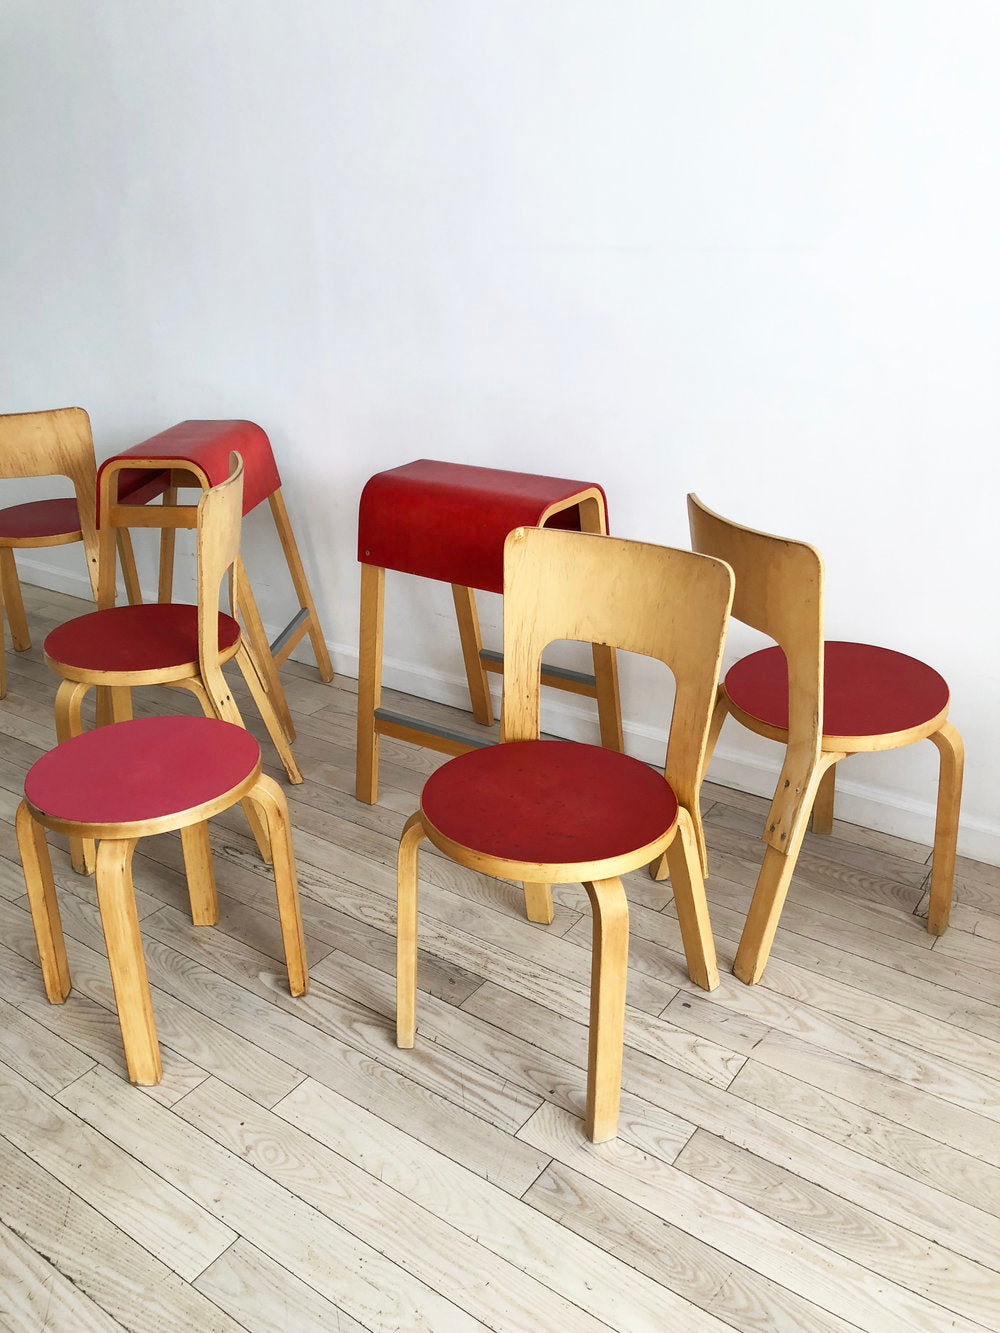 Super Old Alvar Aalto Set of 4 Chair 66 Dining Chairs-SET